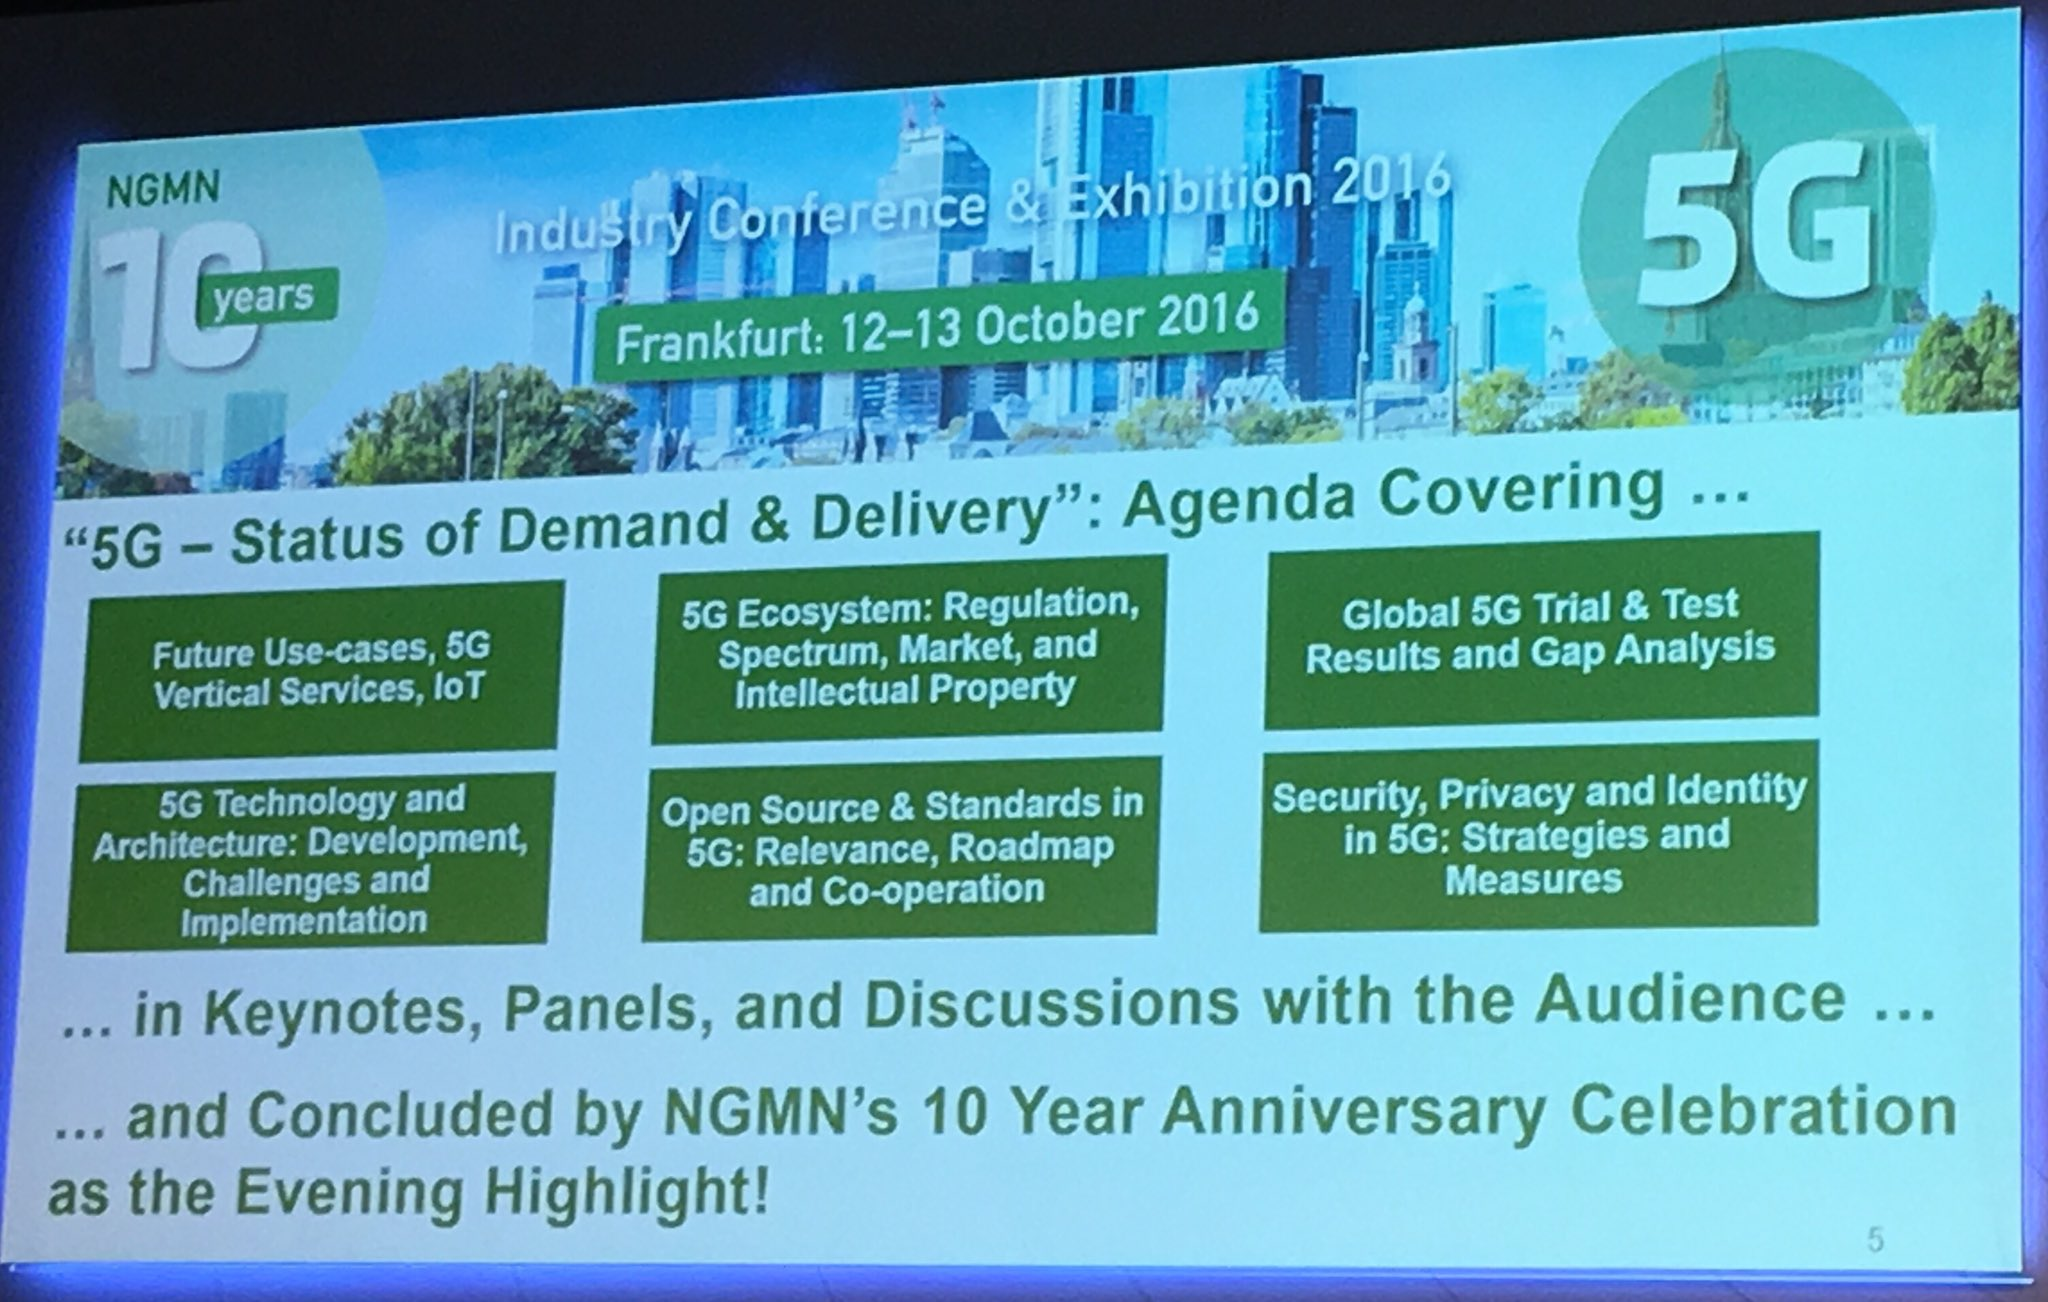 @ngmn industry conference in Frankfurt https://t.co/UHts4g04rA